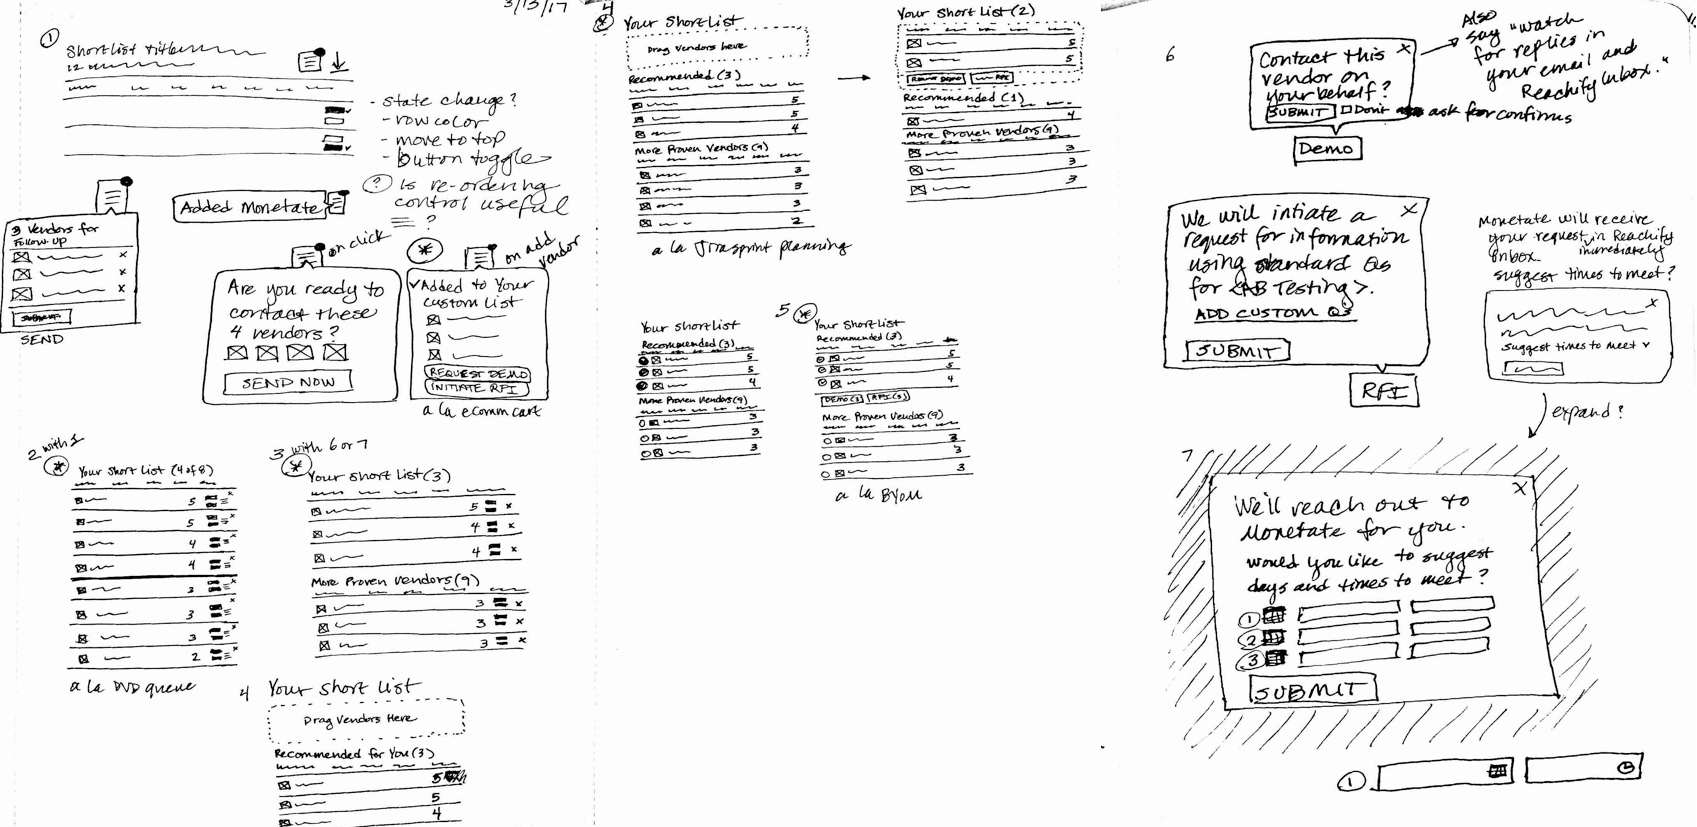 Sketches for the ShortList interface